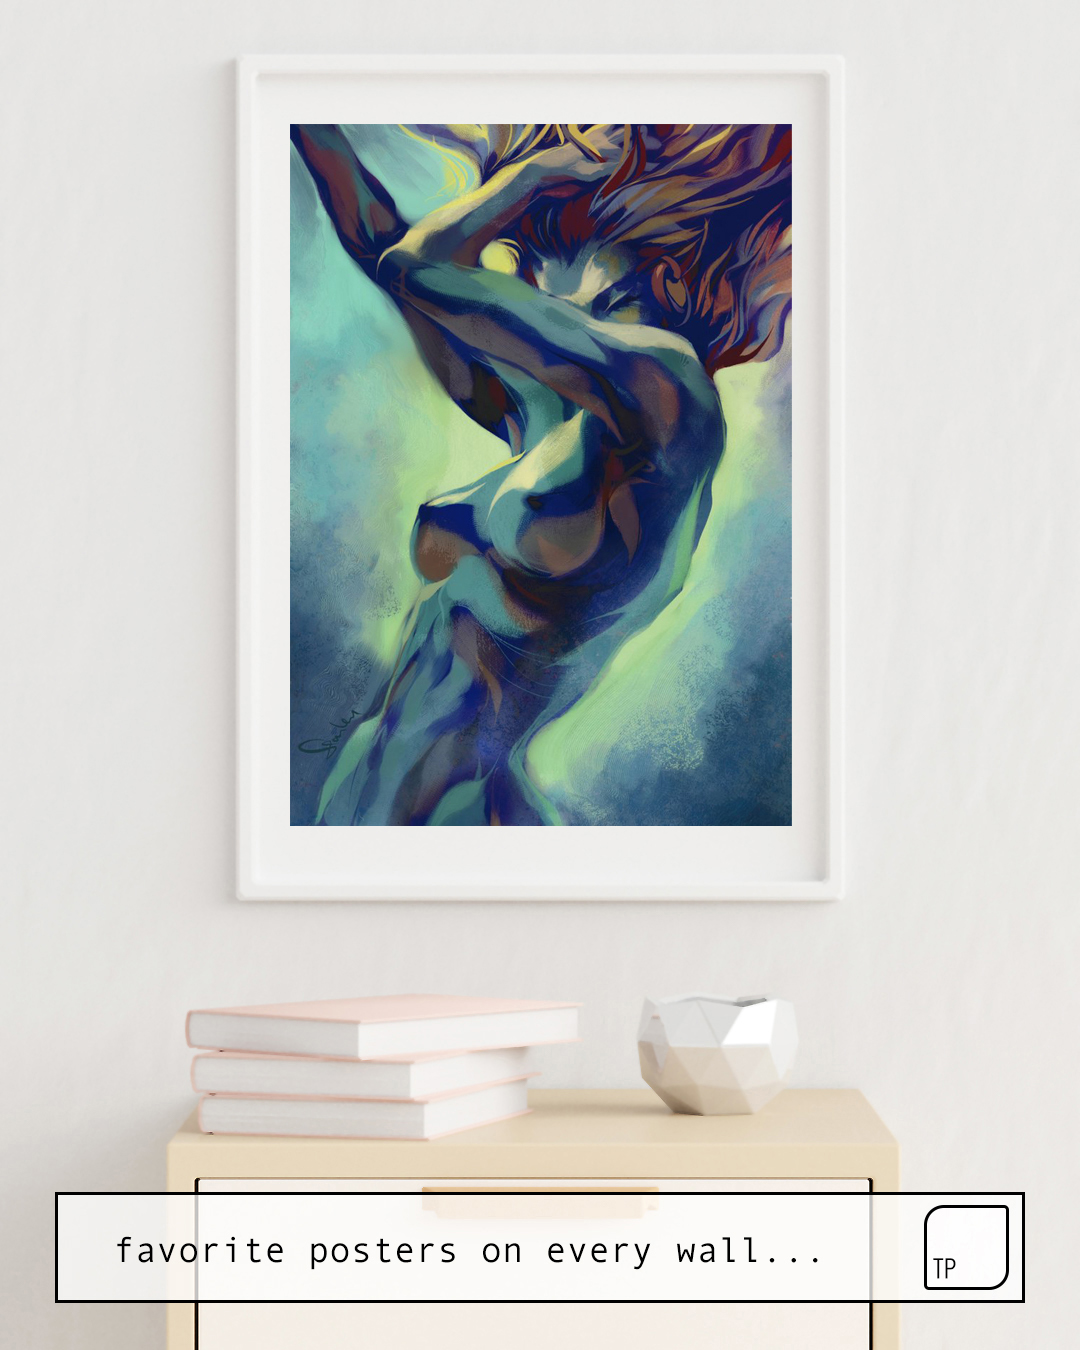 The photo shows an example of furnishing with the motif PEPPER MOTION by Stanley Artgerm Lau as mural